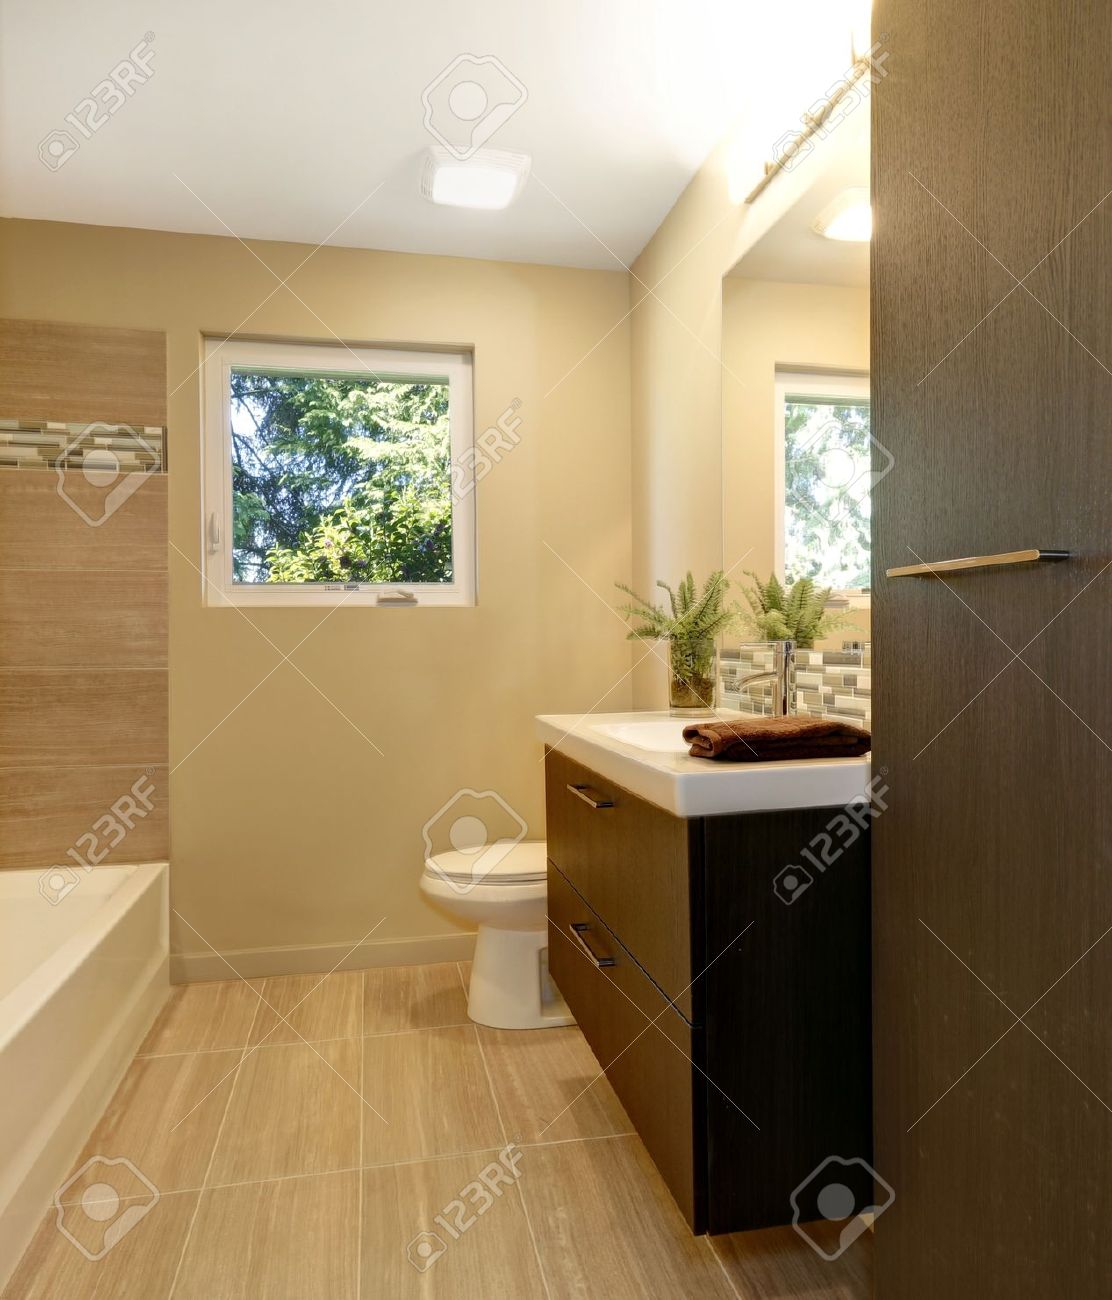 Beige modern new bathroom with brown wood cabinets and tub. Stock Photo - 20993039